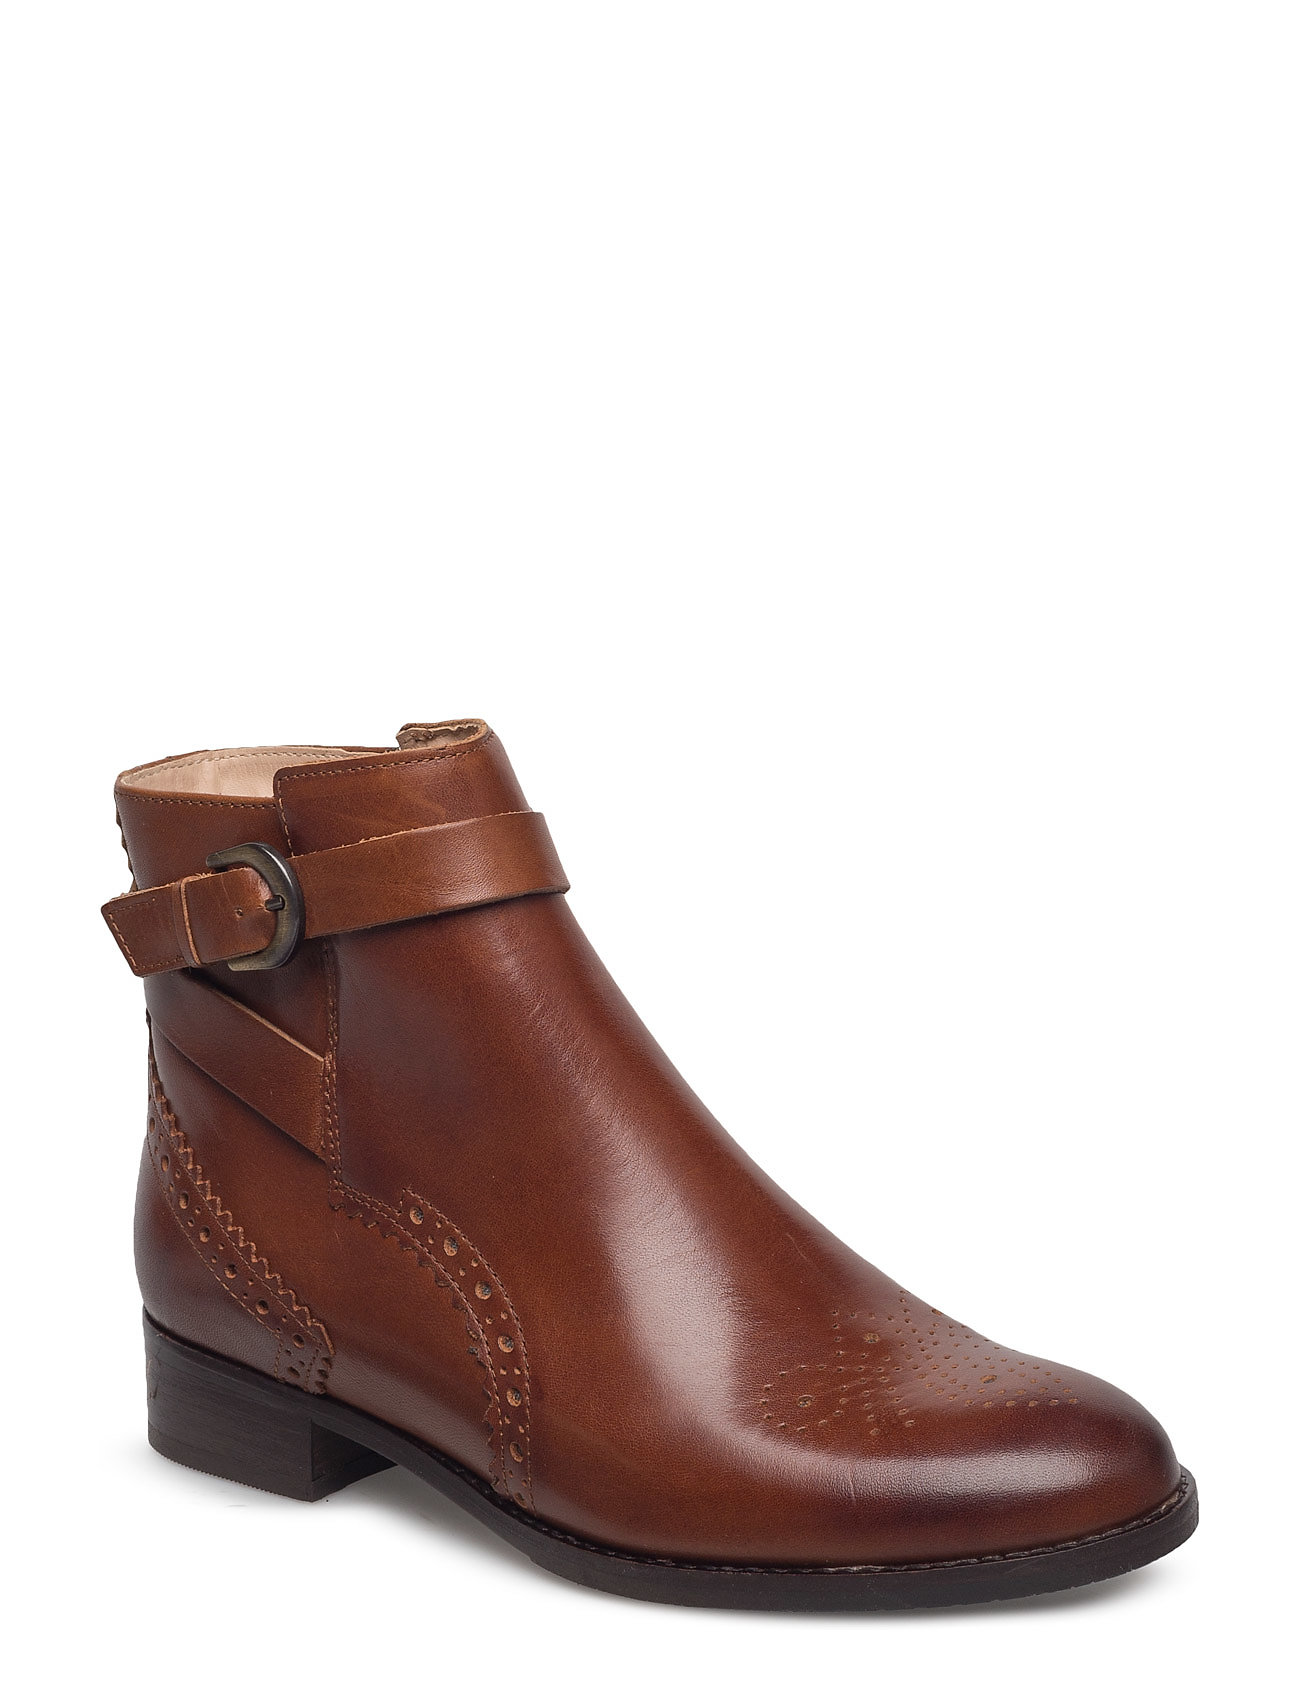 CLARKS Netley Olivia Shoes Boots Ankle Boots Ankle Boots Flat Heel Braun CLARKS